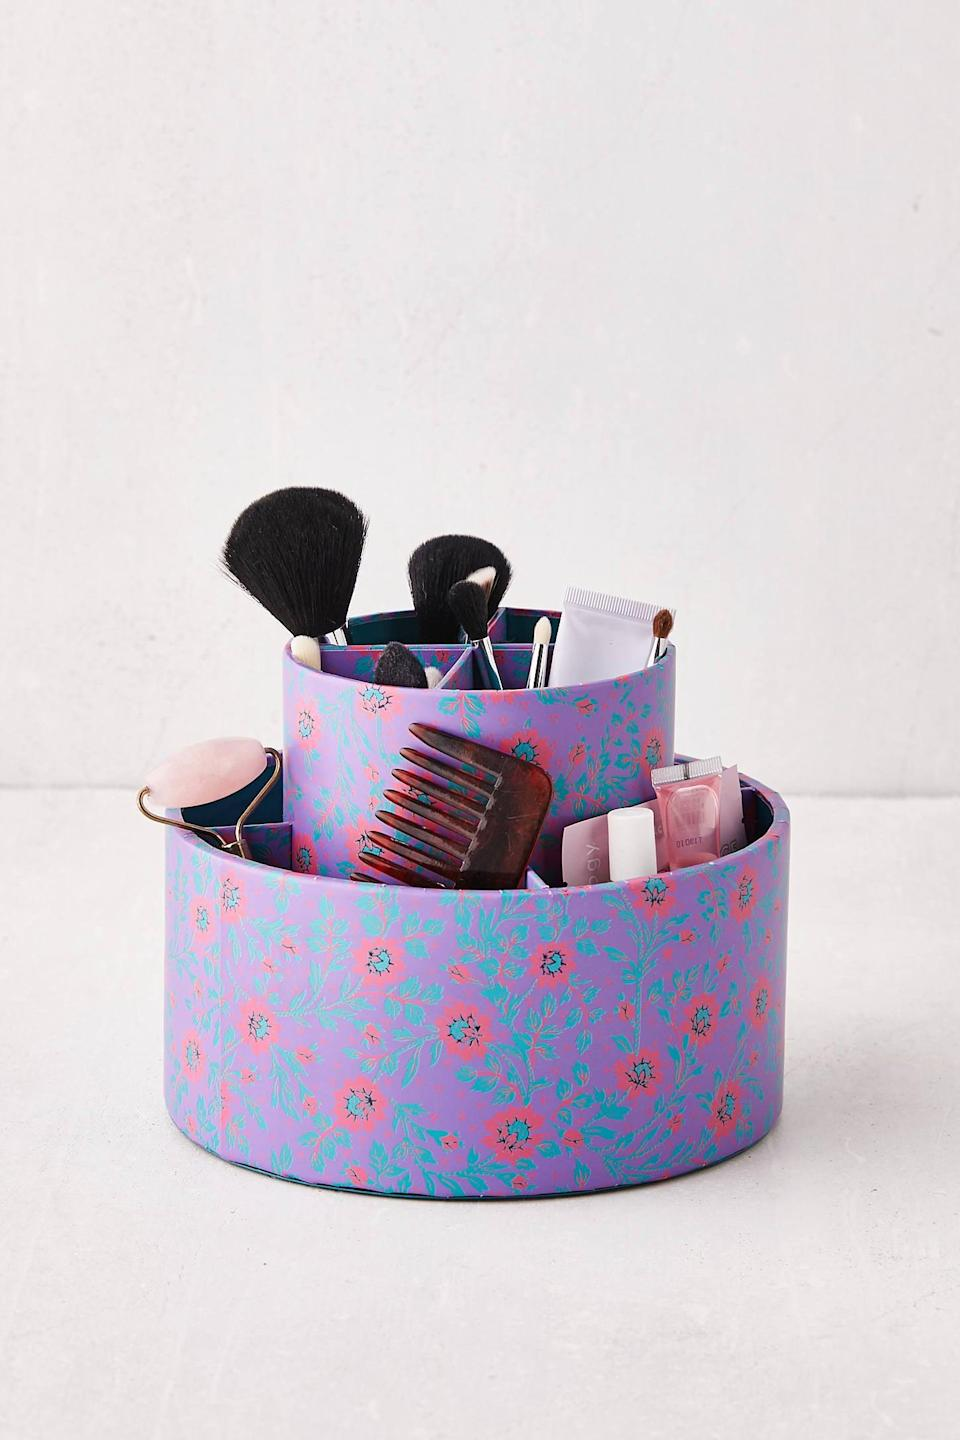 """<h2>Floral Pen Cup And Tray</h2><br>Florals make everything more fun, even organizing.<br><br><strong>Urban Outfitters</strong> Alexis Floral Pen Cup Trio And Desk Tray, $, available at <a href=""""https://go.skimresources.com/?id=30283X879131&url=https%3A%2F%2Fwww.urbanoutfitters.com%2Fshop%2Falexis-floral-pen-cup-trio-and-desk-tray"""" rel=""""nofollow noopener"""" target=""""_blank"""" data-ylk=""""slk:Urban Outfitters"""" class=""""link rapid-noclick-resp"""">Urban Outfitters</a>"""